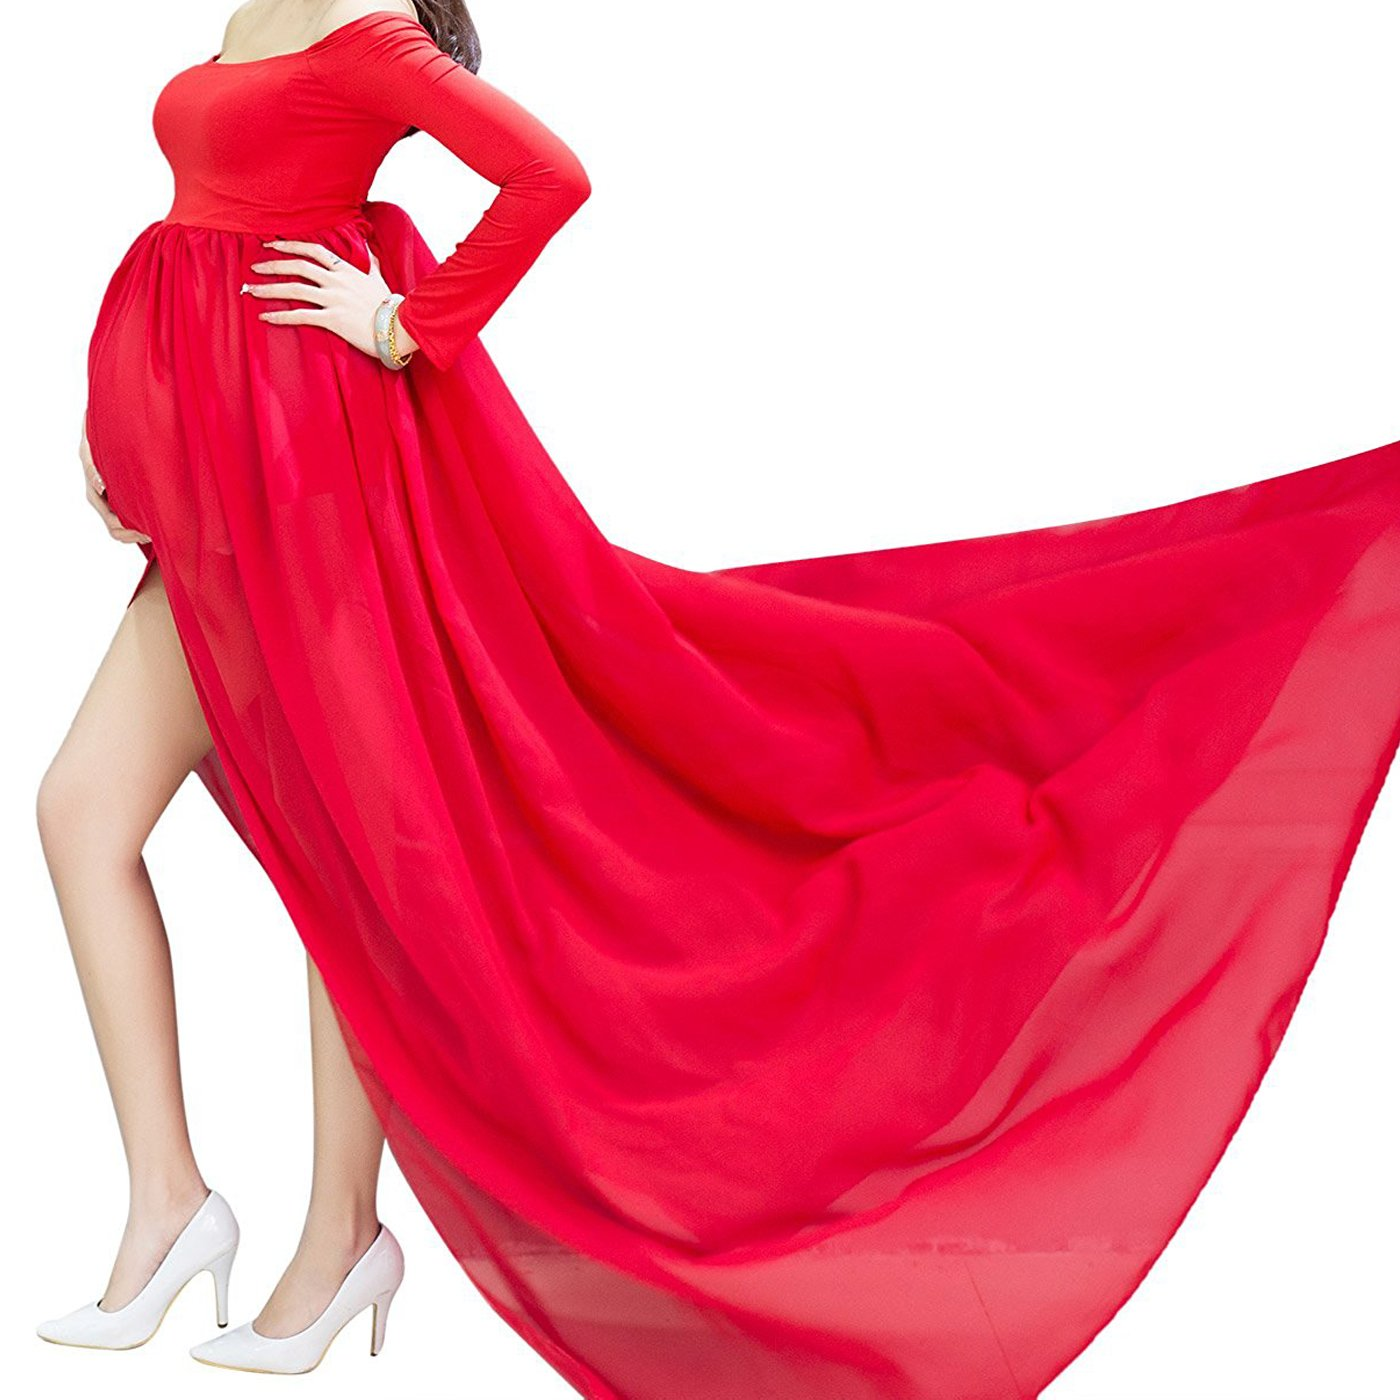 Eagsouni Maternity Maxi Chiffon Photography Dress Gown Open Split Front Long Sleeve for Pregnancy Photo Shoot Props YWJ-FS0291KGR-XXX